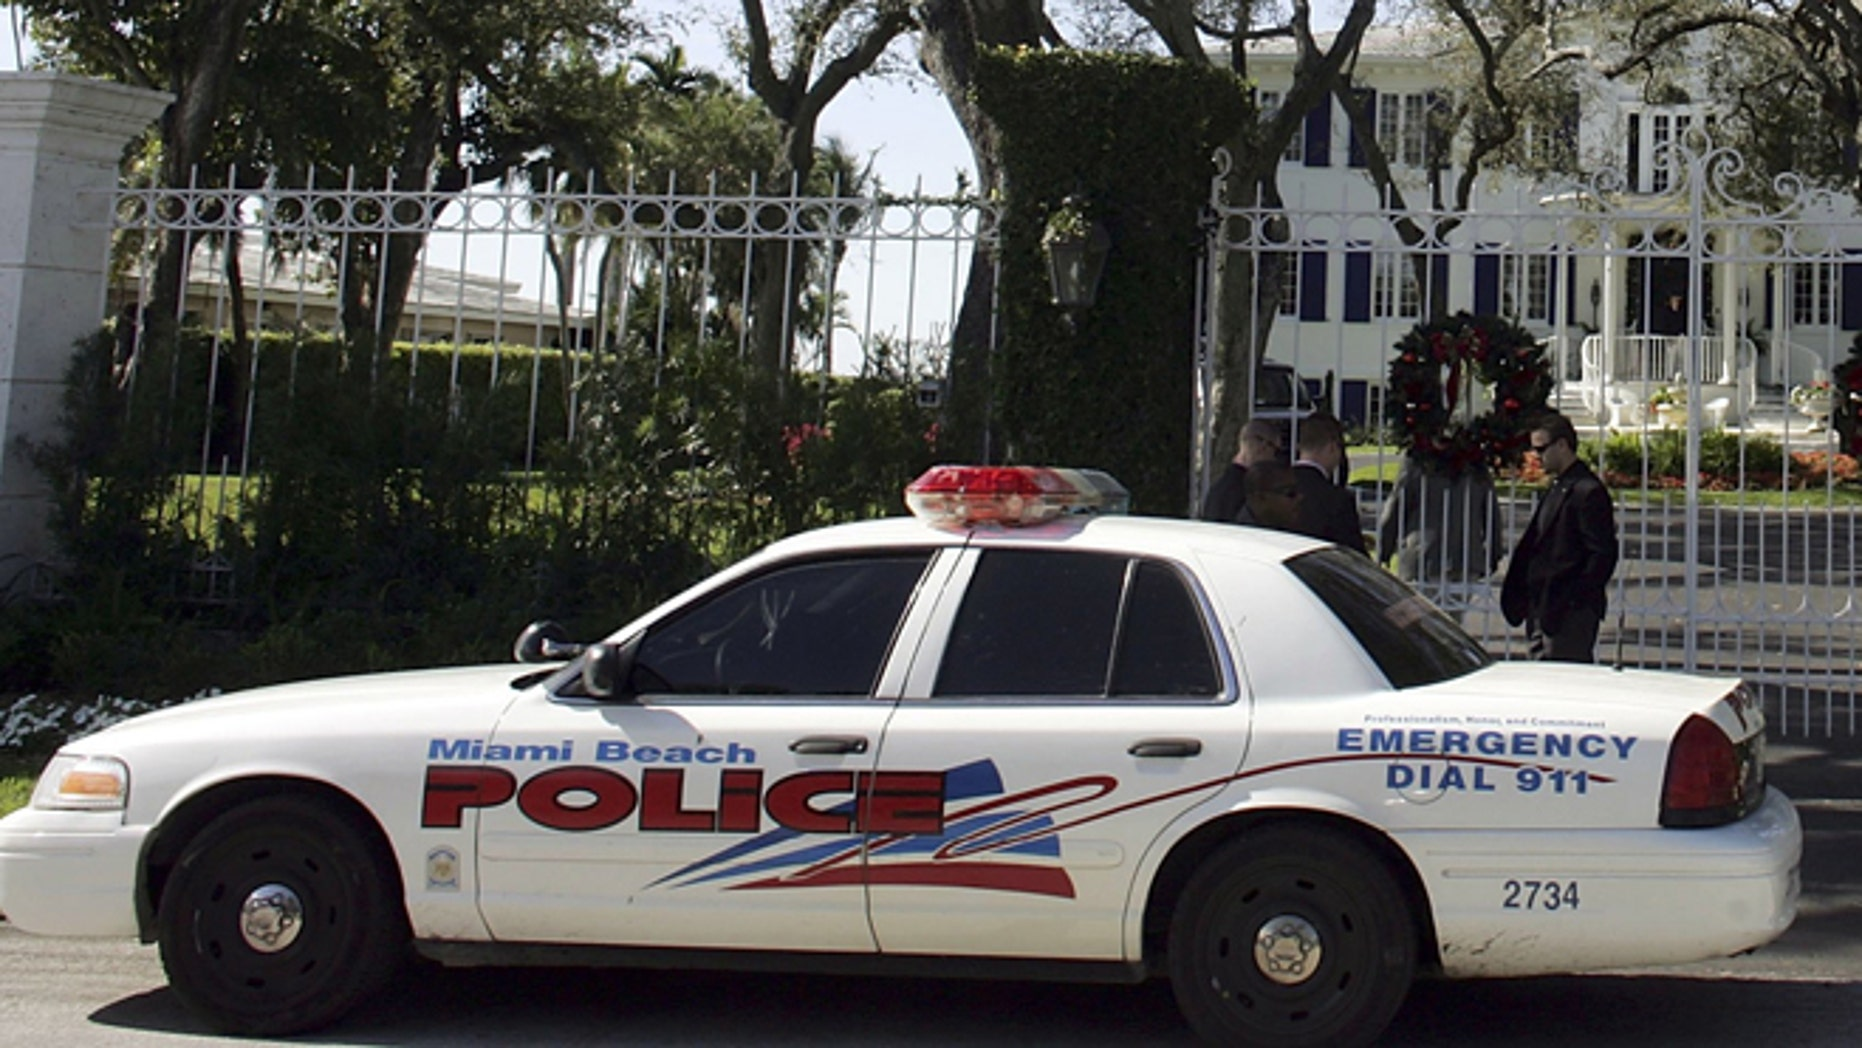 MIAMI BEACH, FL - DECEMBER 27:  Security personnel and a city of Miami Beach police officer guard the front entrance to the home where British Prime Minister Tony Blair and his family are vacationing December 27, 2006 in Miami Beach, Florida. Blair is staying at the home of Robin Gibb of the Bee Gees. Last night, British Airways Flight 209, with Blair aboard, missed a turn after landing and struck runway lights at Miami International Airport. There were no reports of injuries.  (Photo by Joe Raedle/Getty Images)